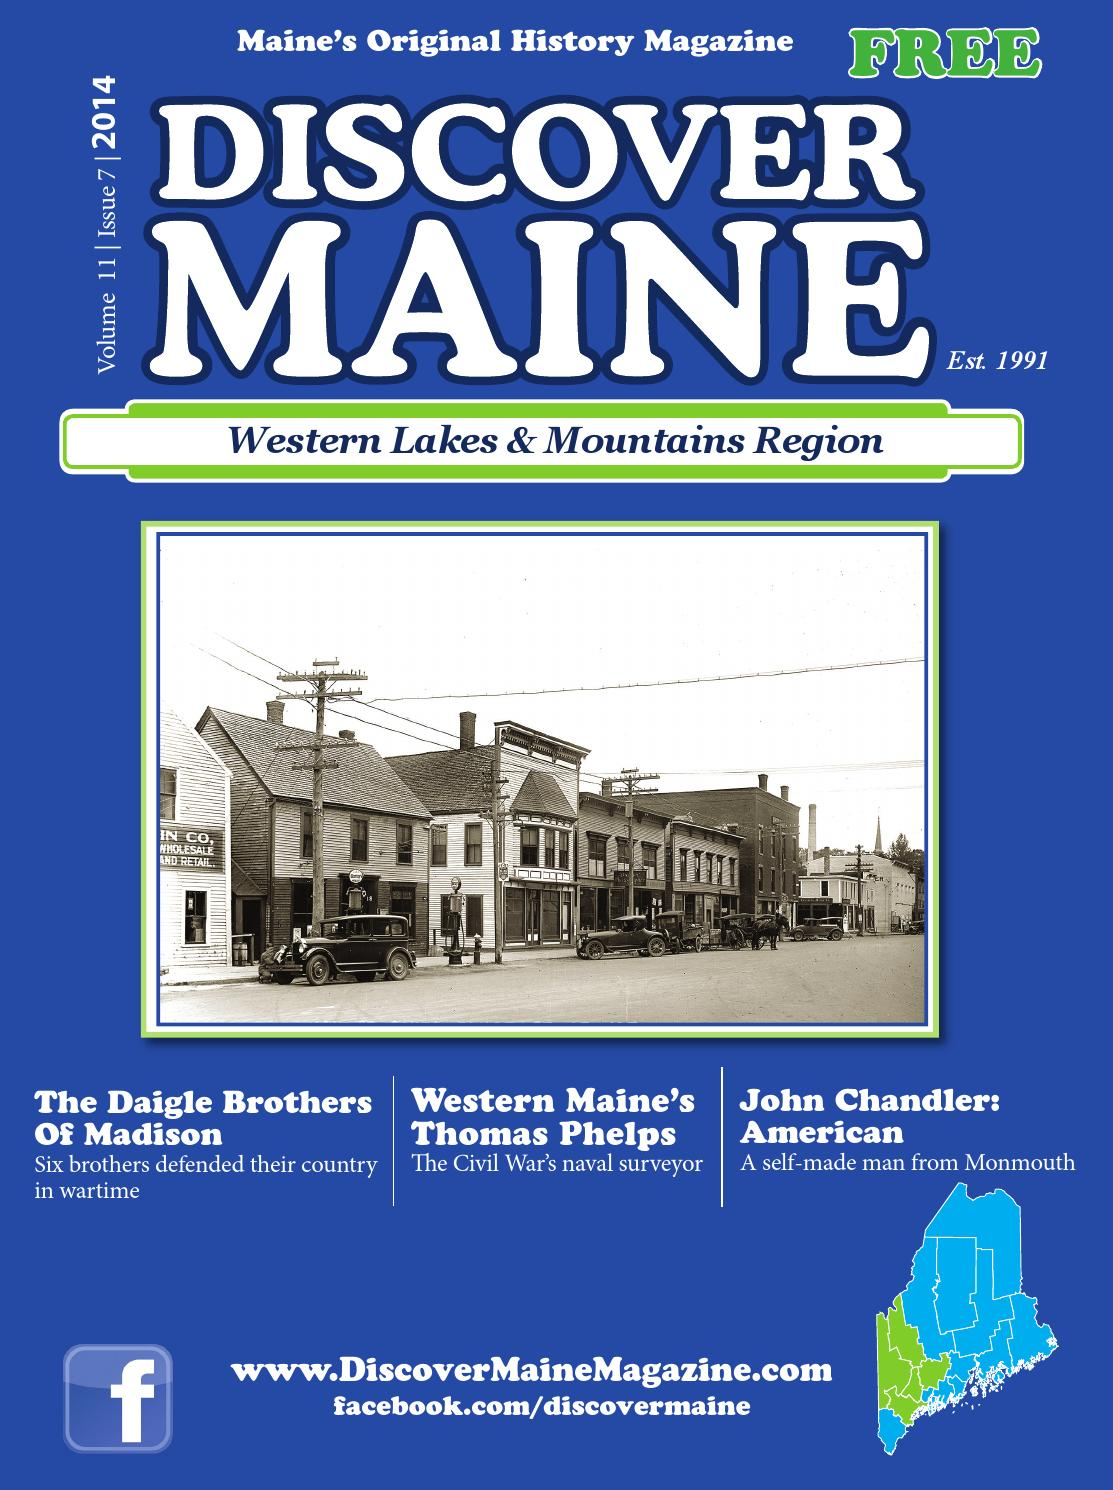 2014 Western Lakes & Mtns Region by Discover Maine Magazine